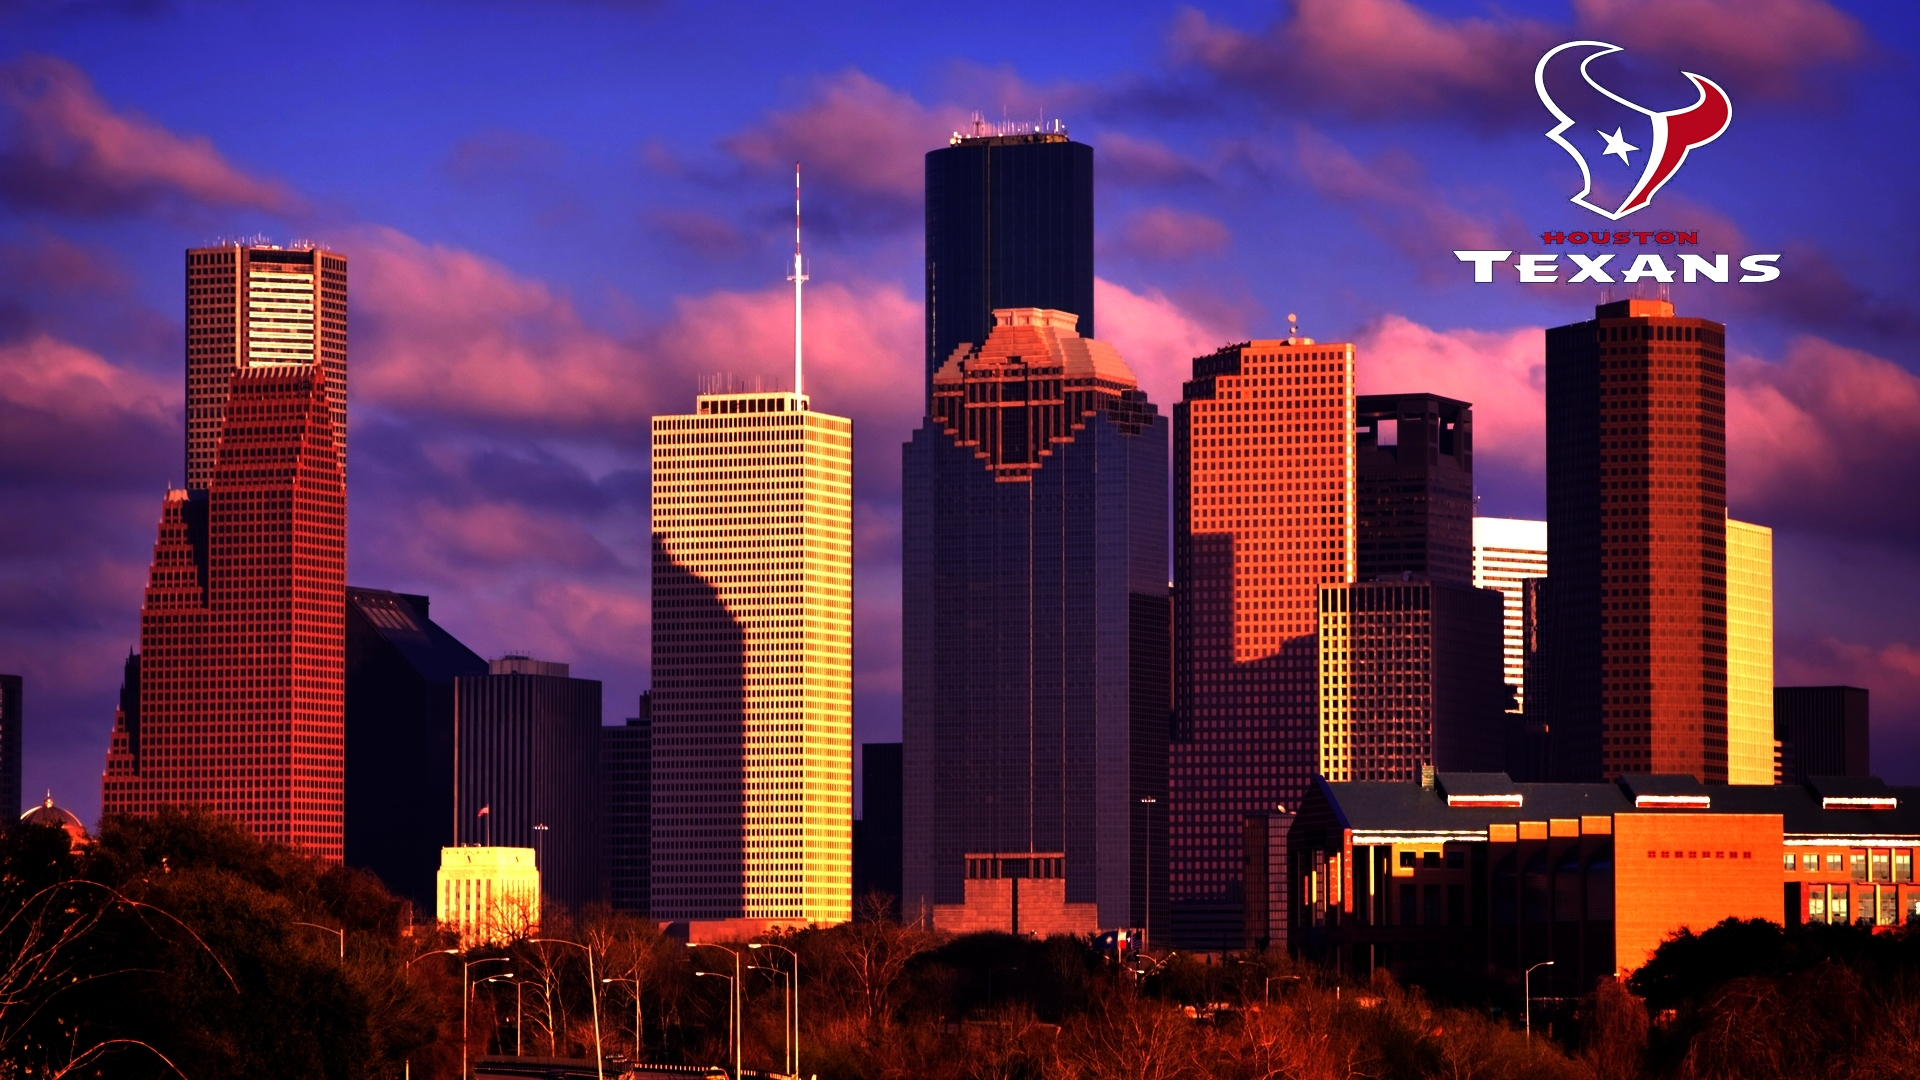 texans background houston texans background houston texans backgrounds 1920x1080